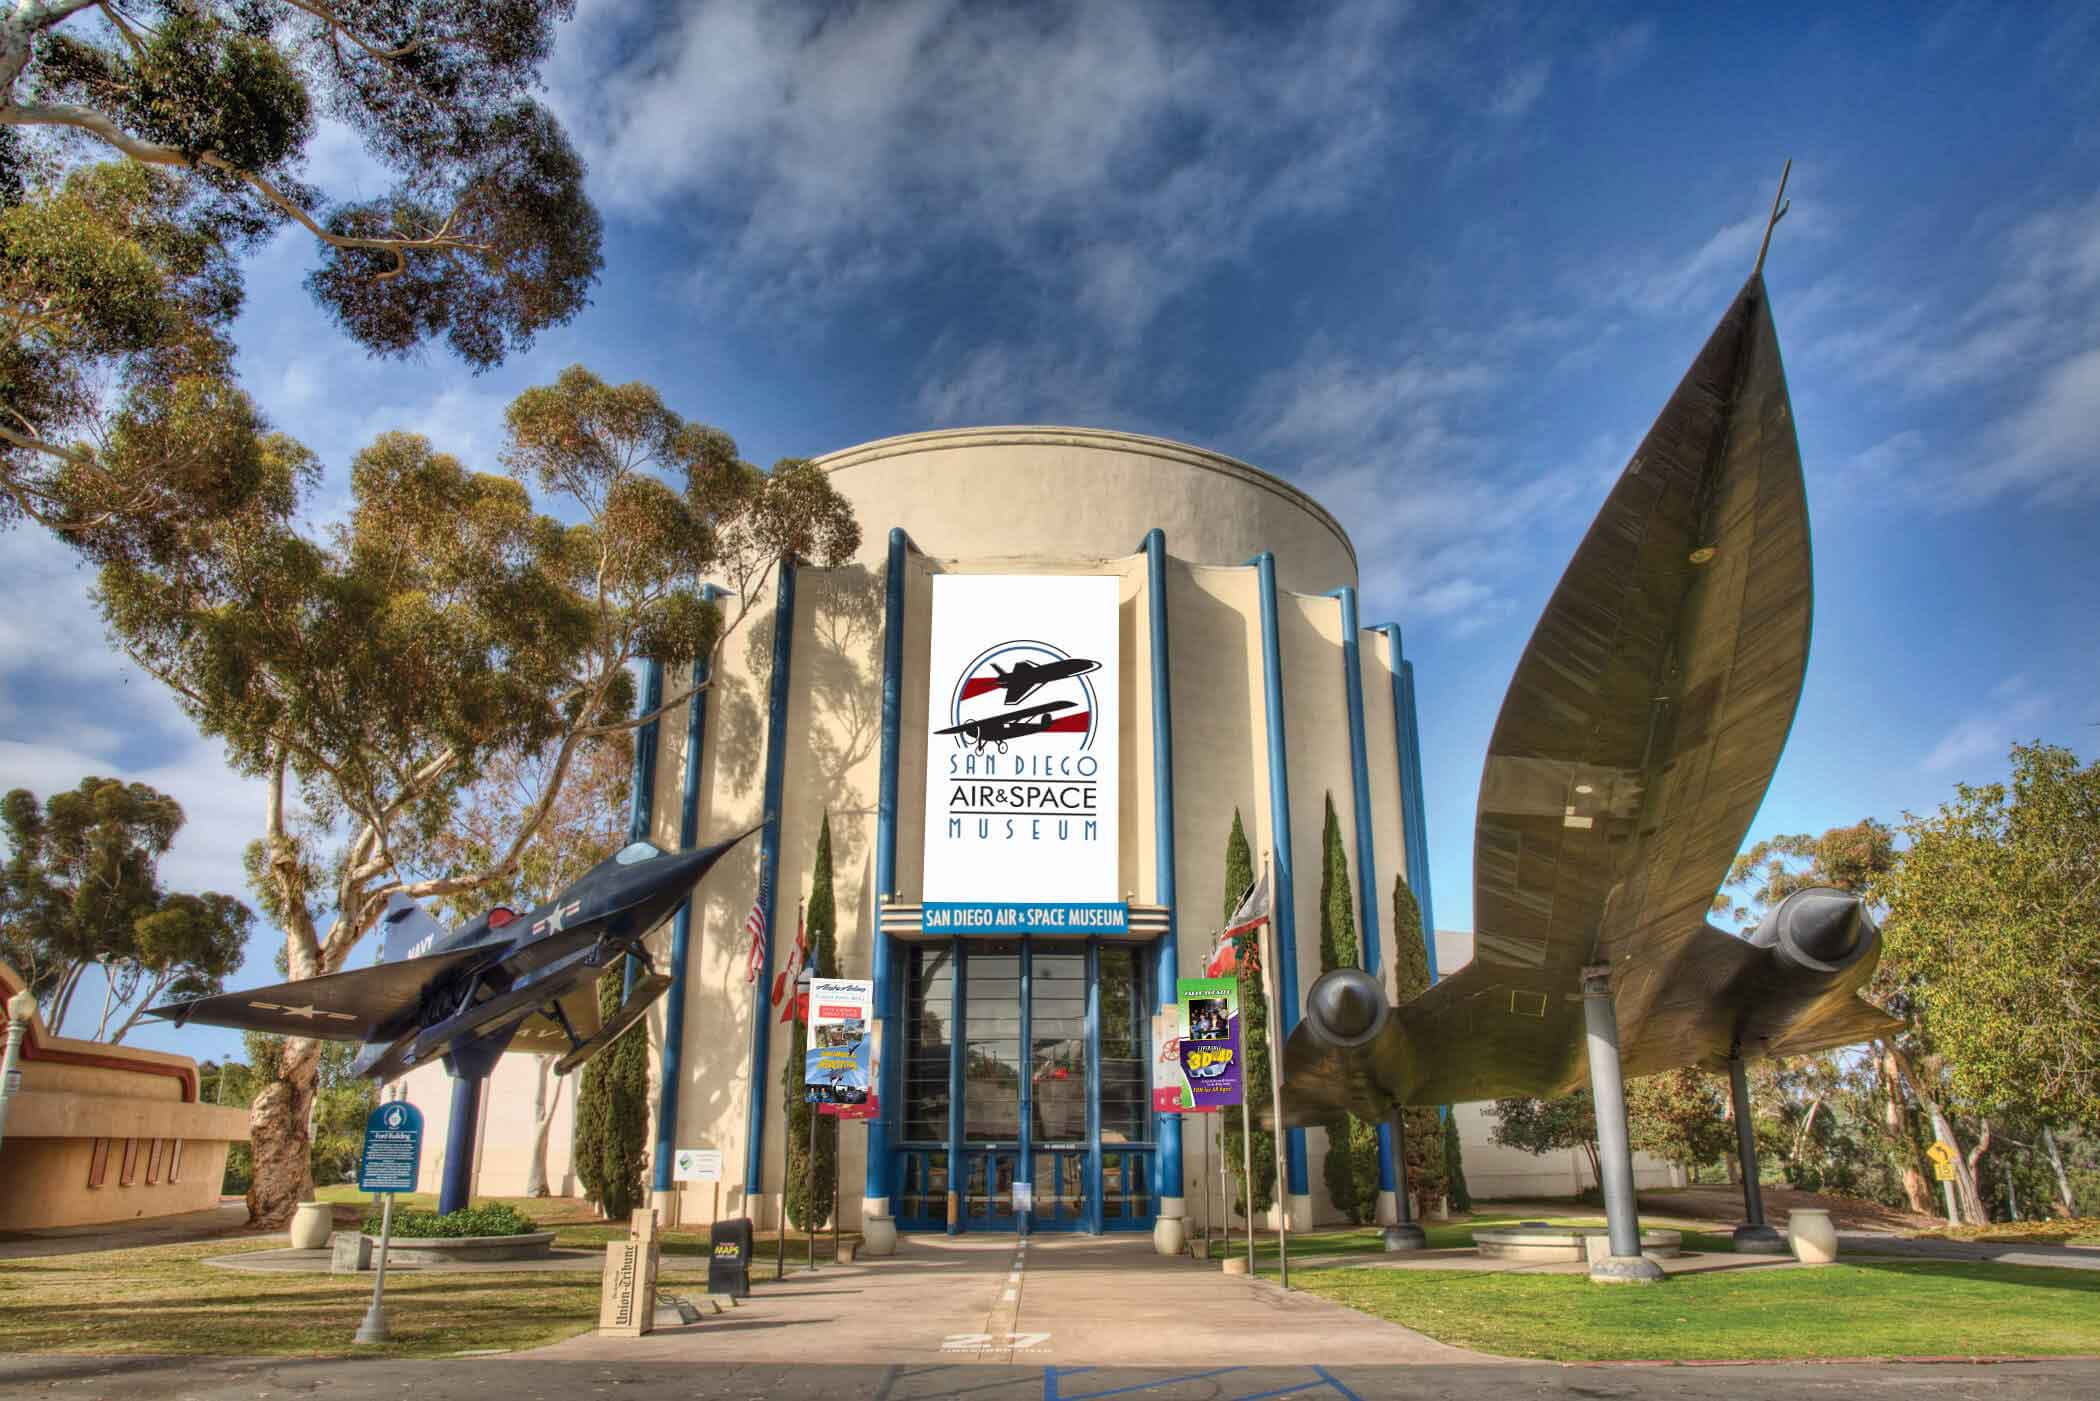 building exterior of San Diego Air & Space Museum with airplane models mounted on posts on either side of building